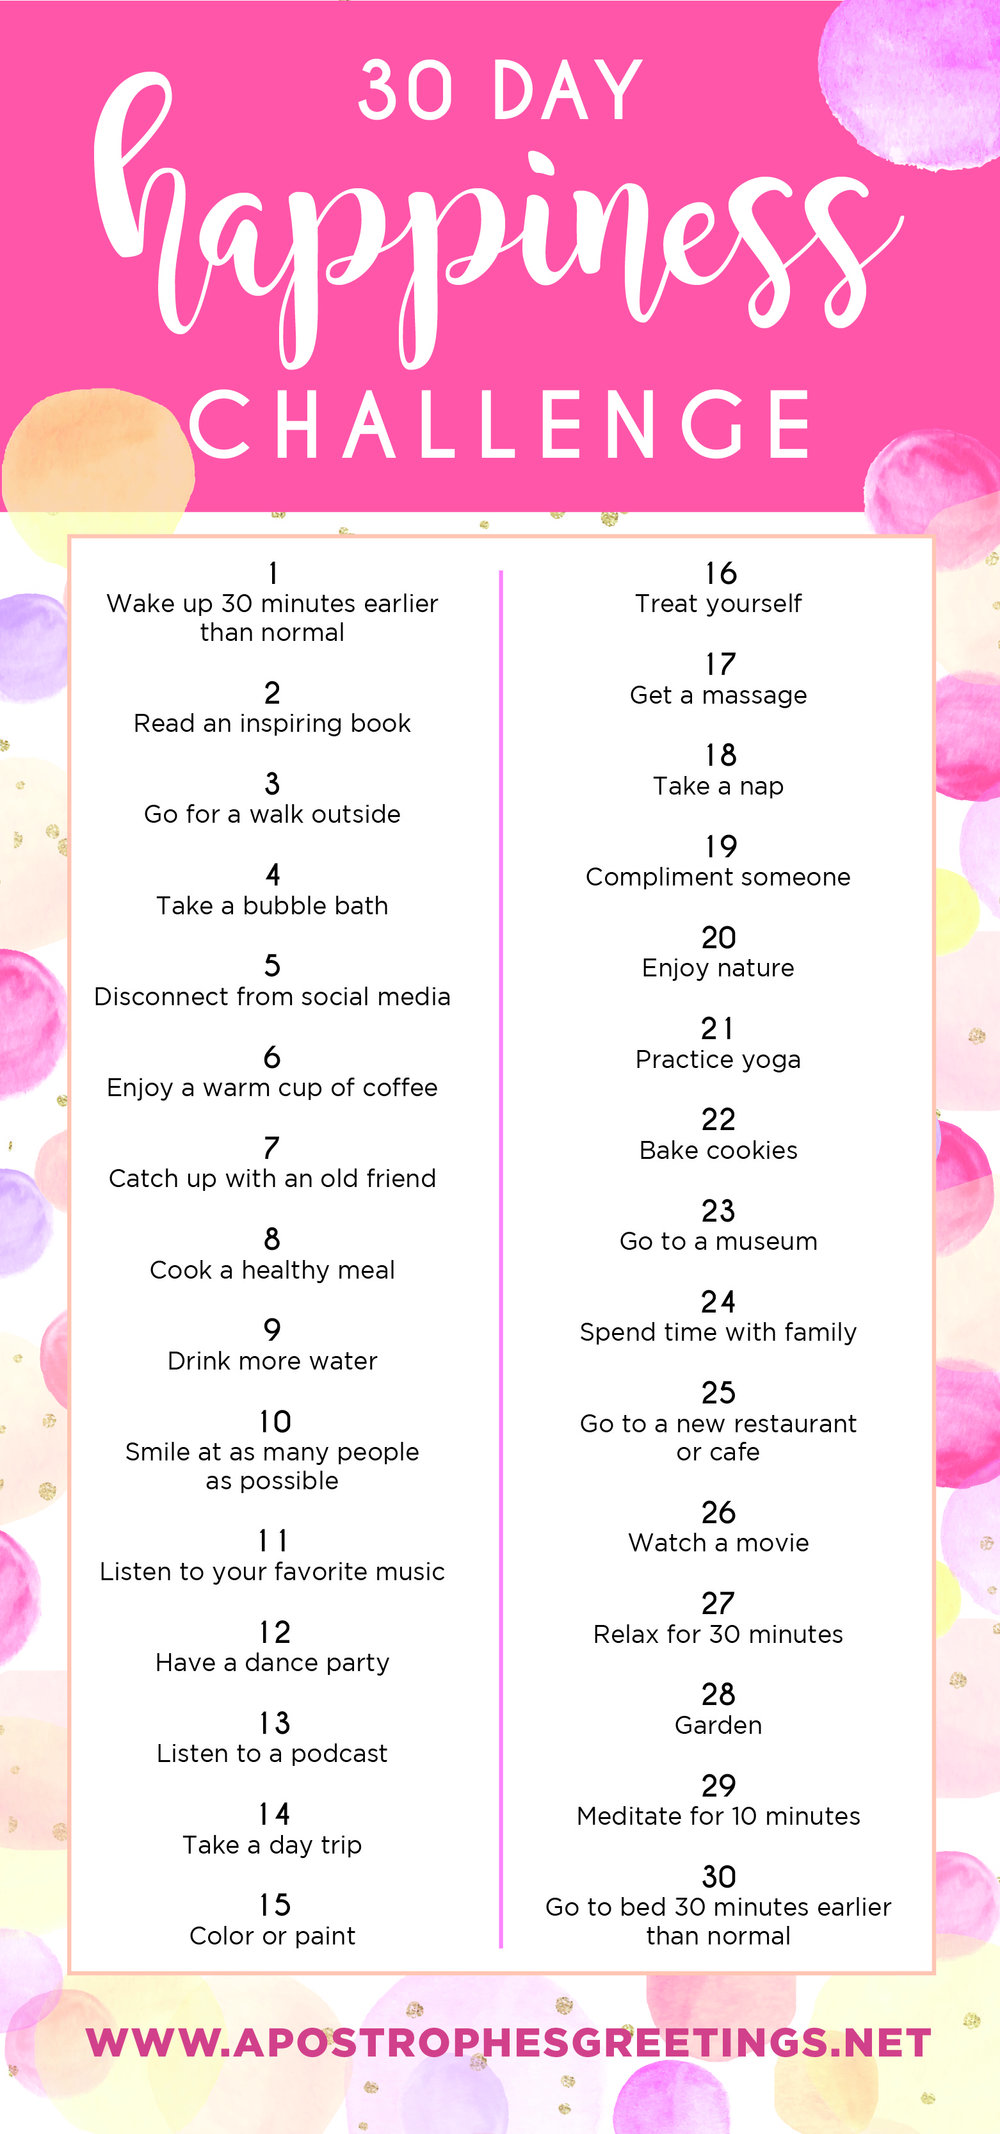 Take the 30 Day Happiness Challenge! — Apostrophe S Greetings